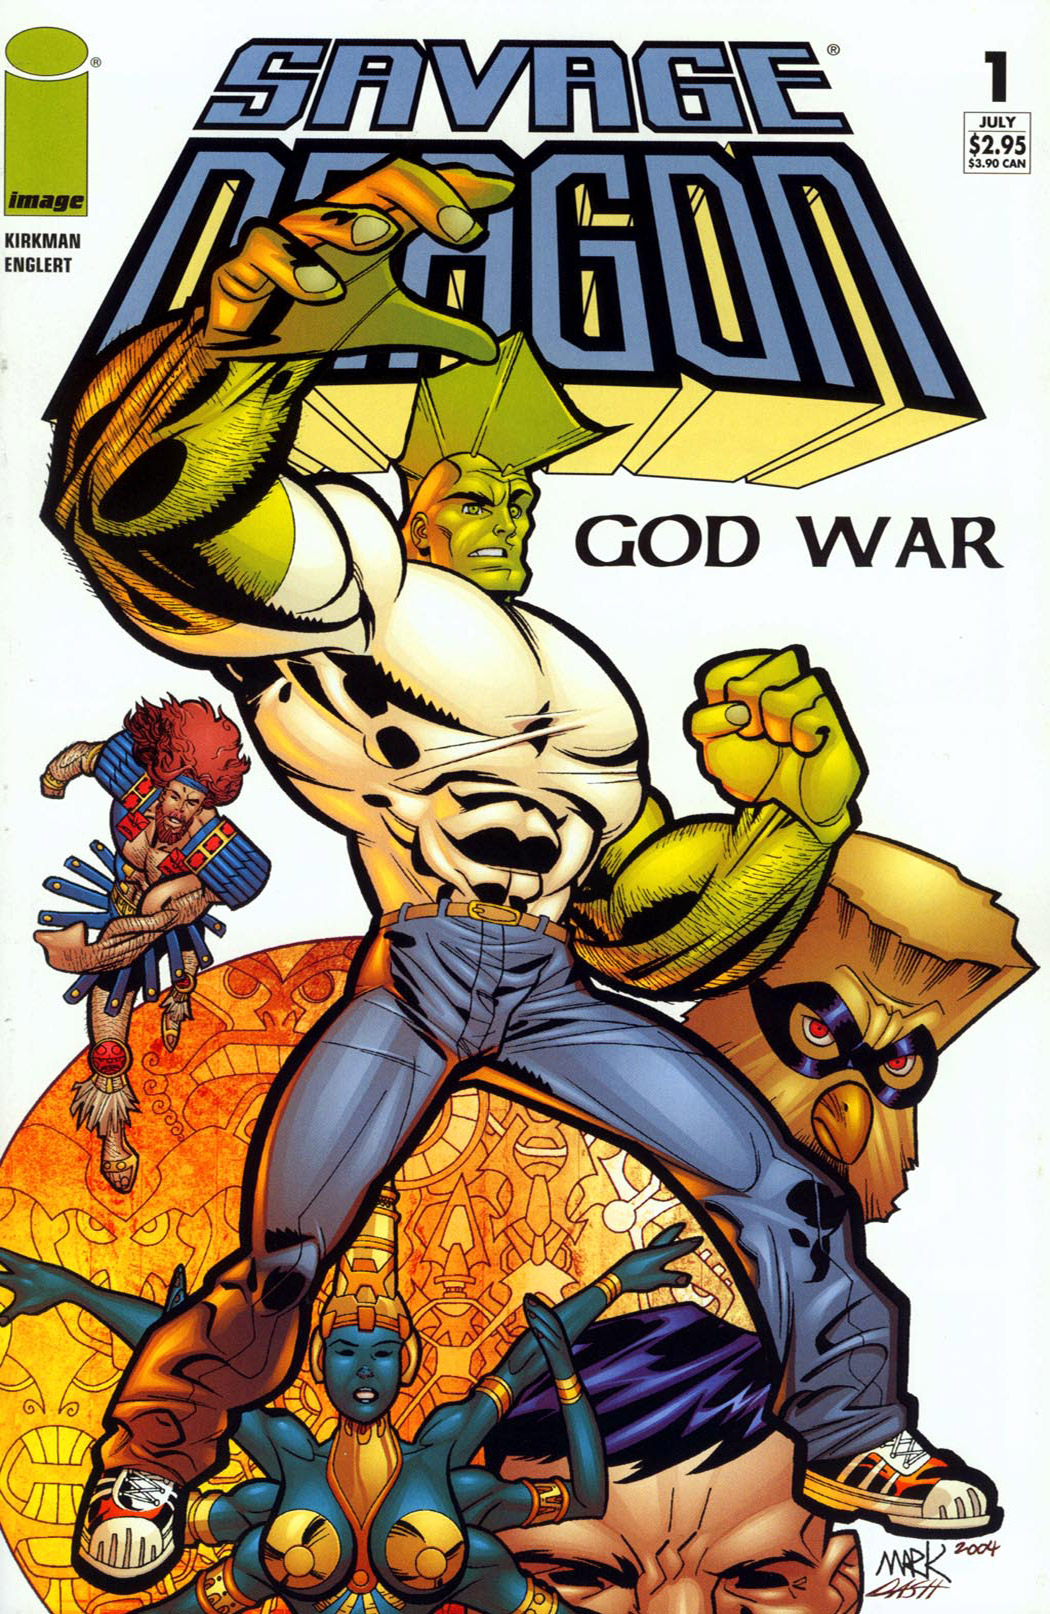 Cover Savage Dragon God War #01